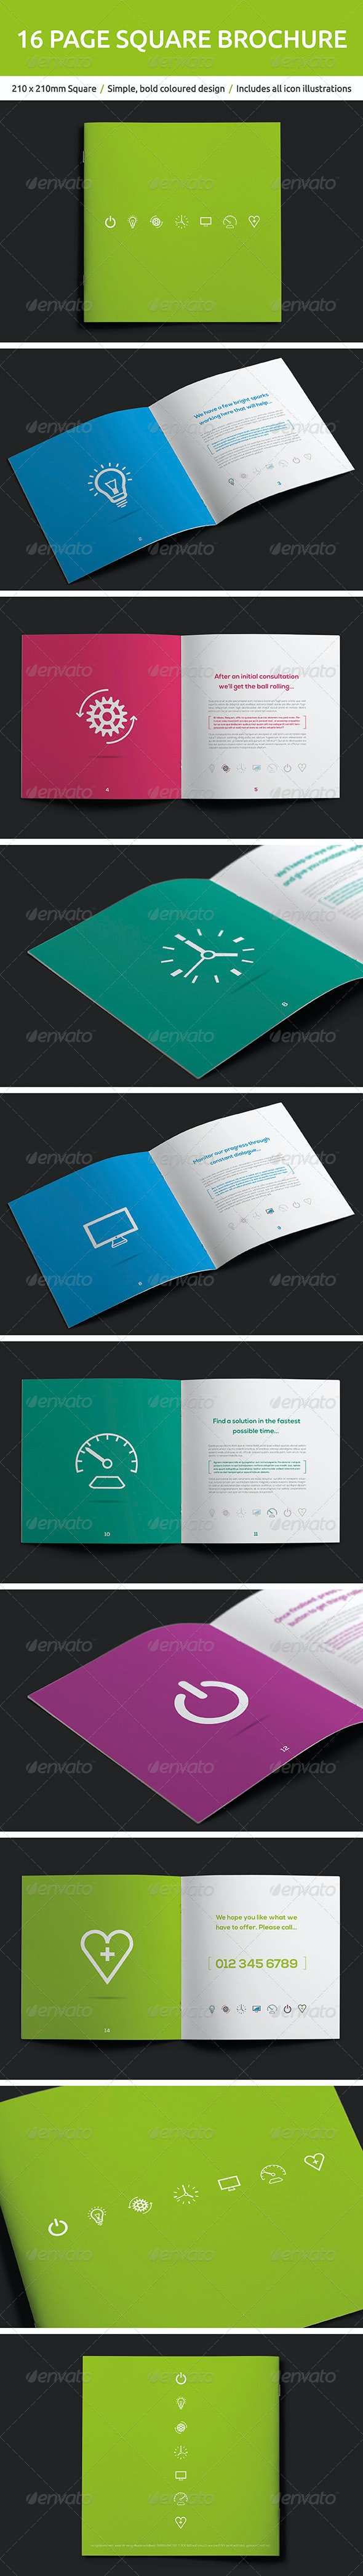 16 Page Square Brochure - Brochures Print Templates